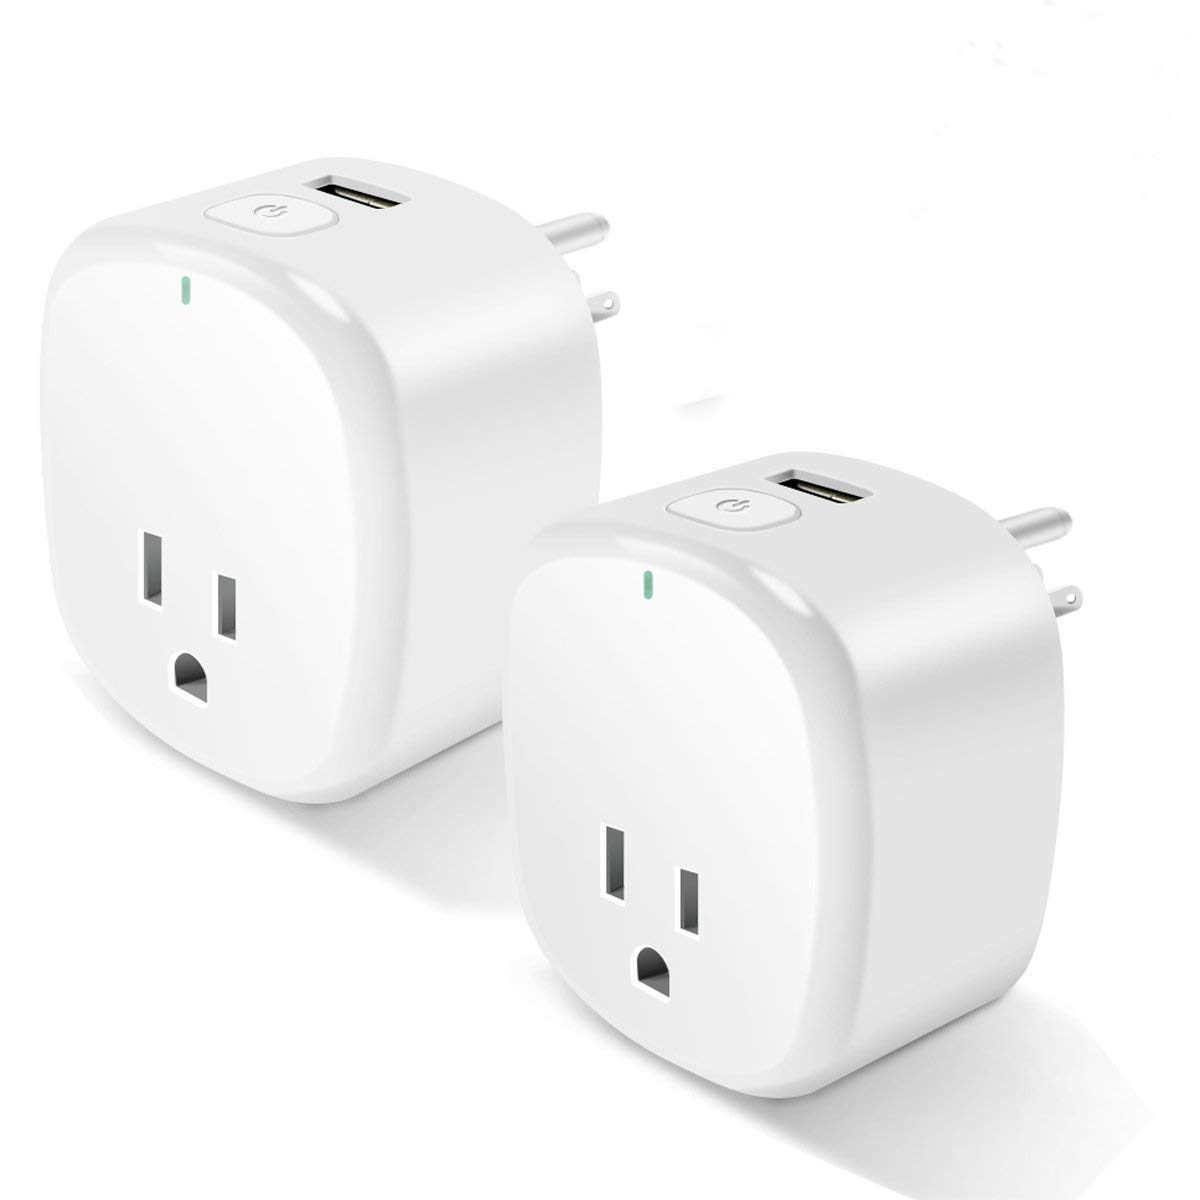 Smart Plug 2 Pack, Control Your Electric Devices Anytime and Anywhere, Timer Outlet with USB Port, No Hub Required, Compatible with Alexa & Google Assistant [UL & FCC Certificated]